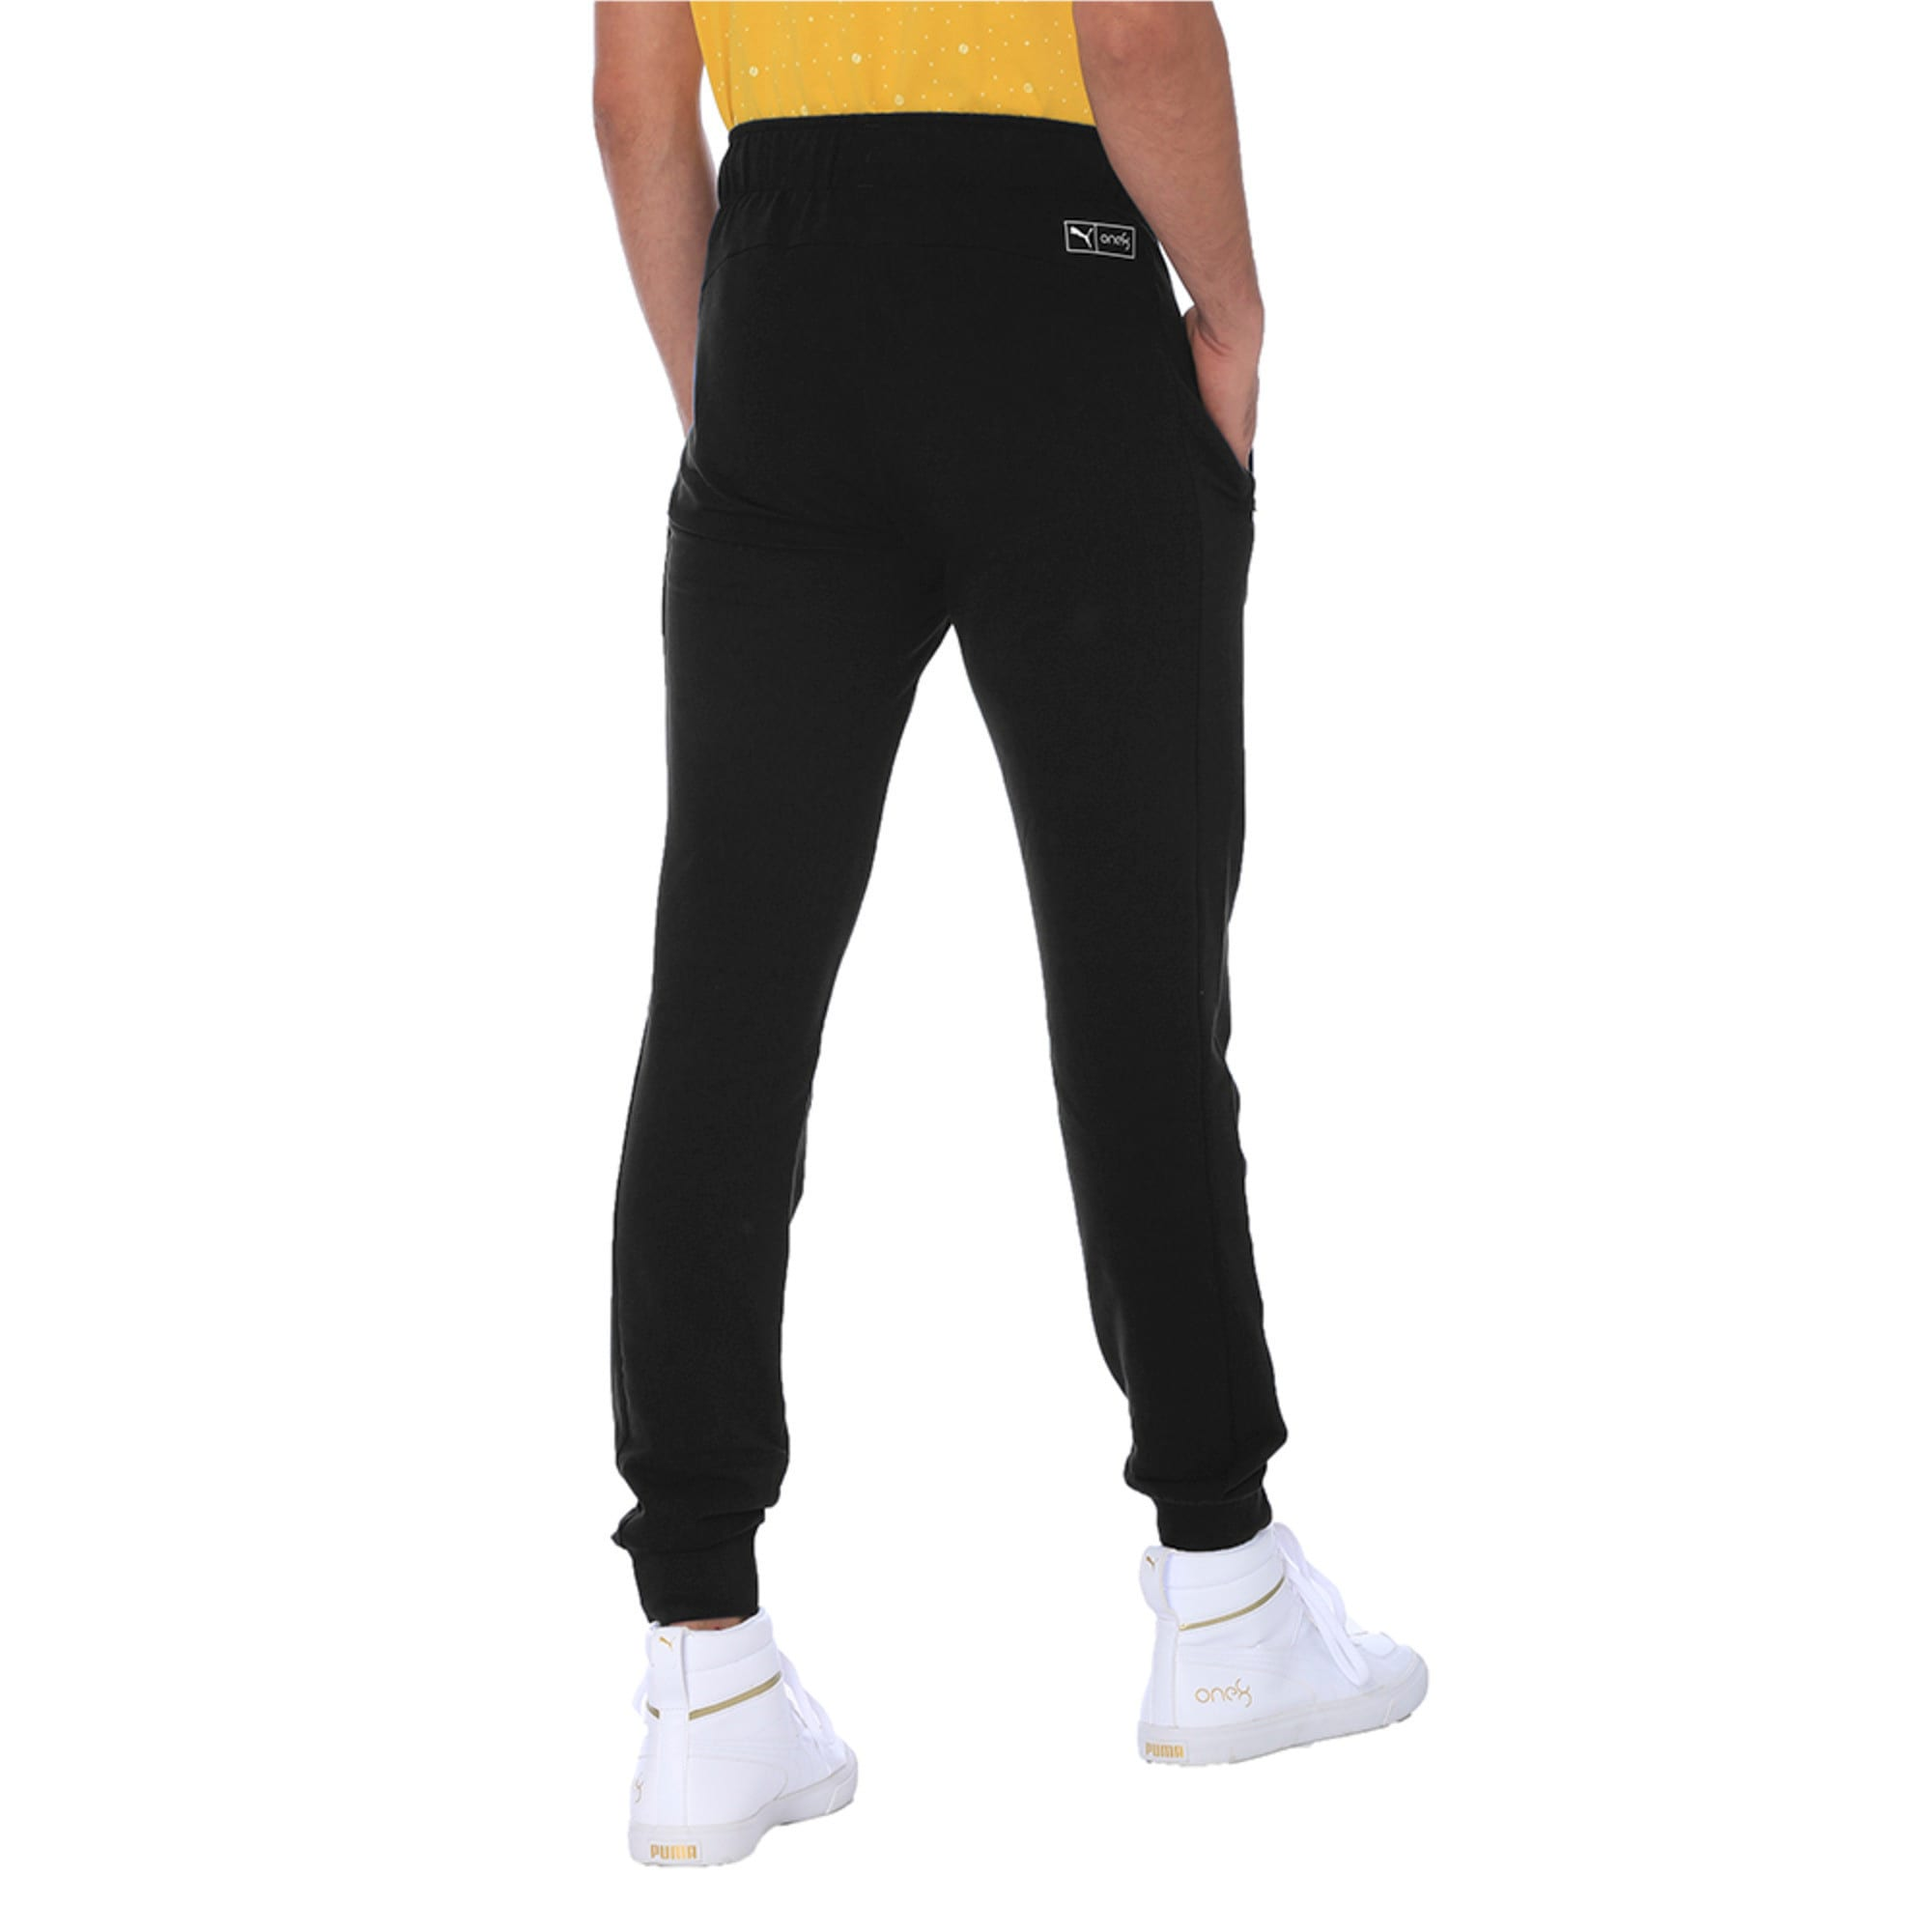 Thumbnail 5 of one8 Men's Knitted Pants, Puma Black, medium-IND